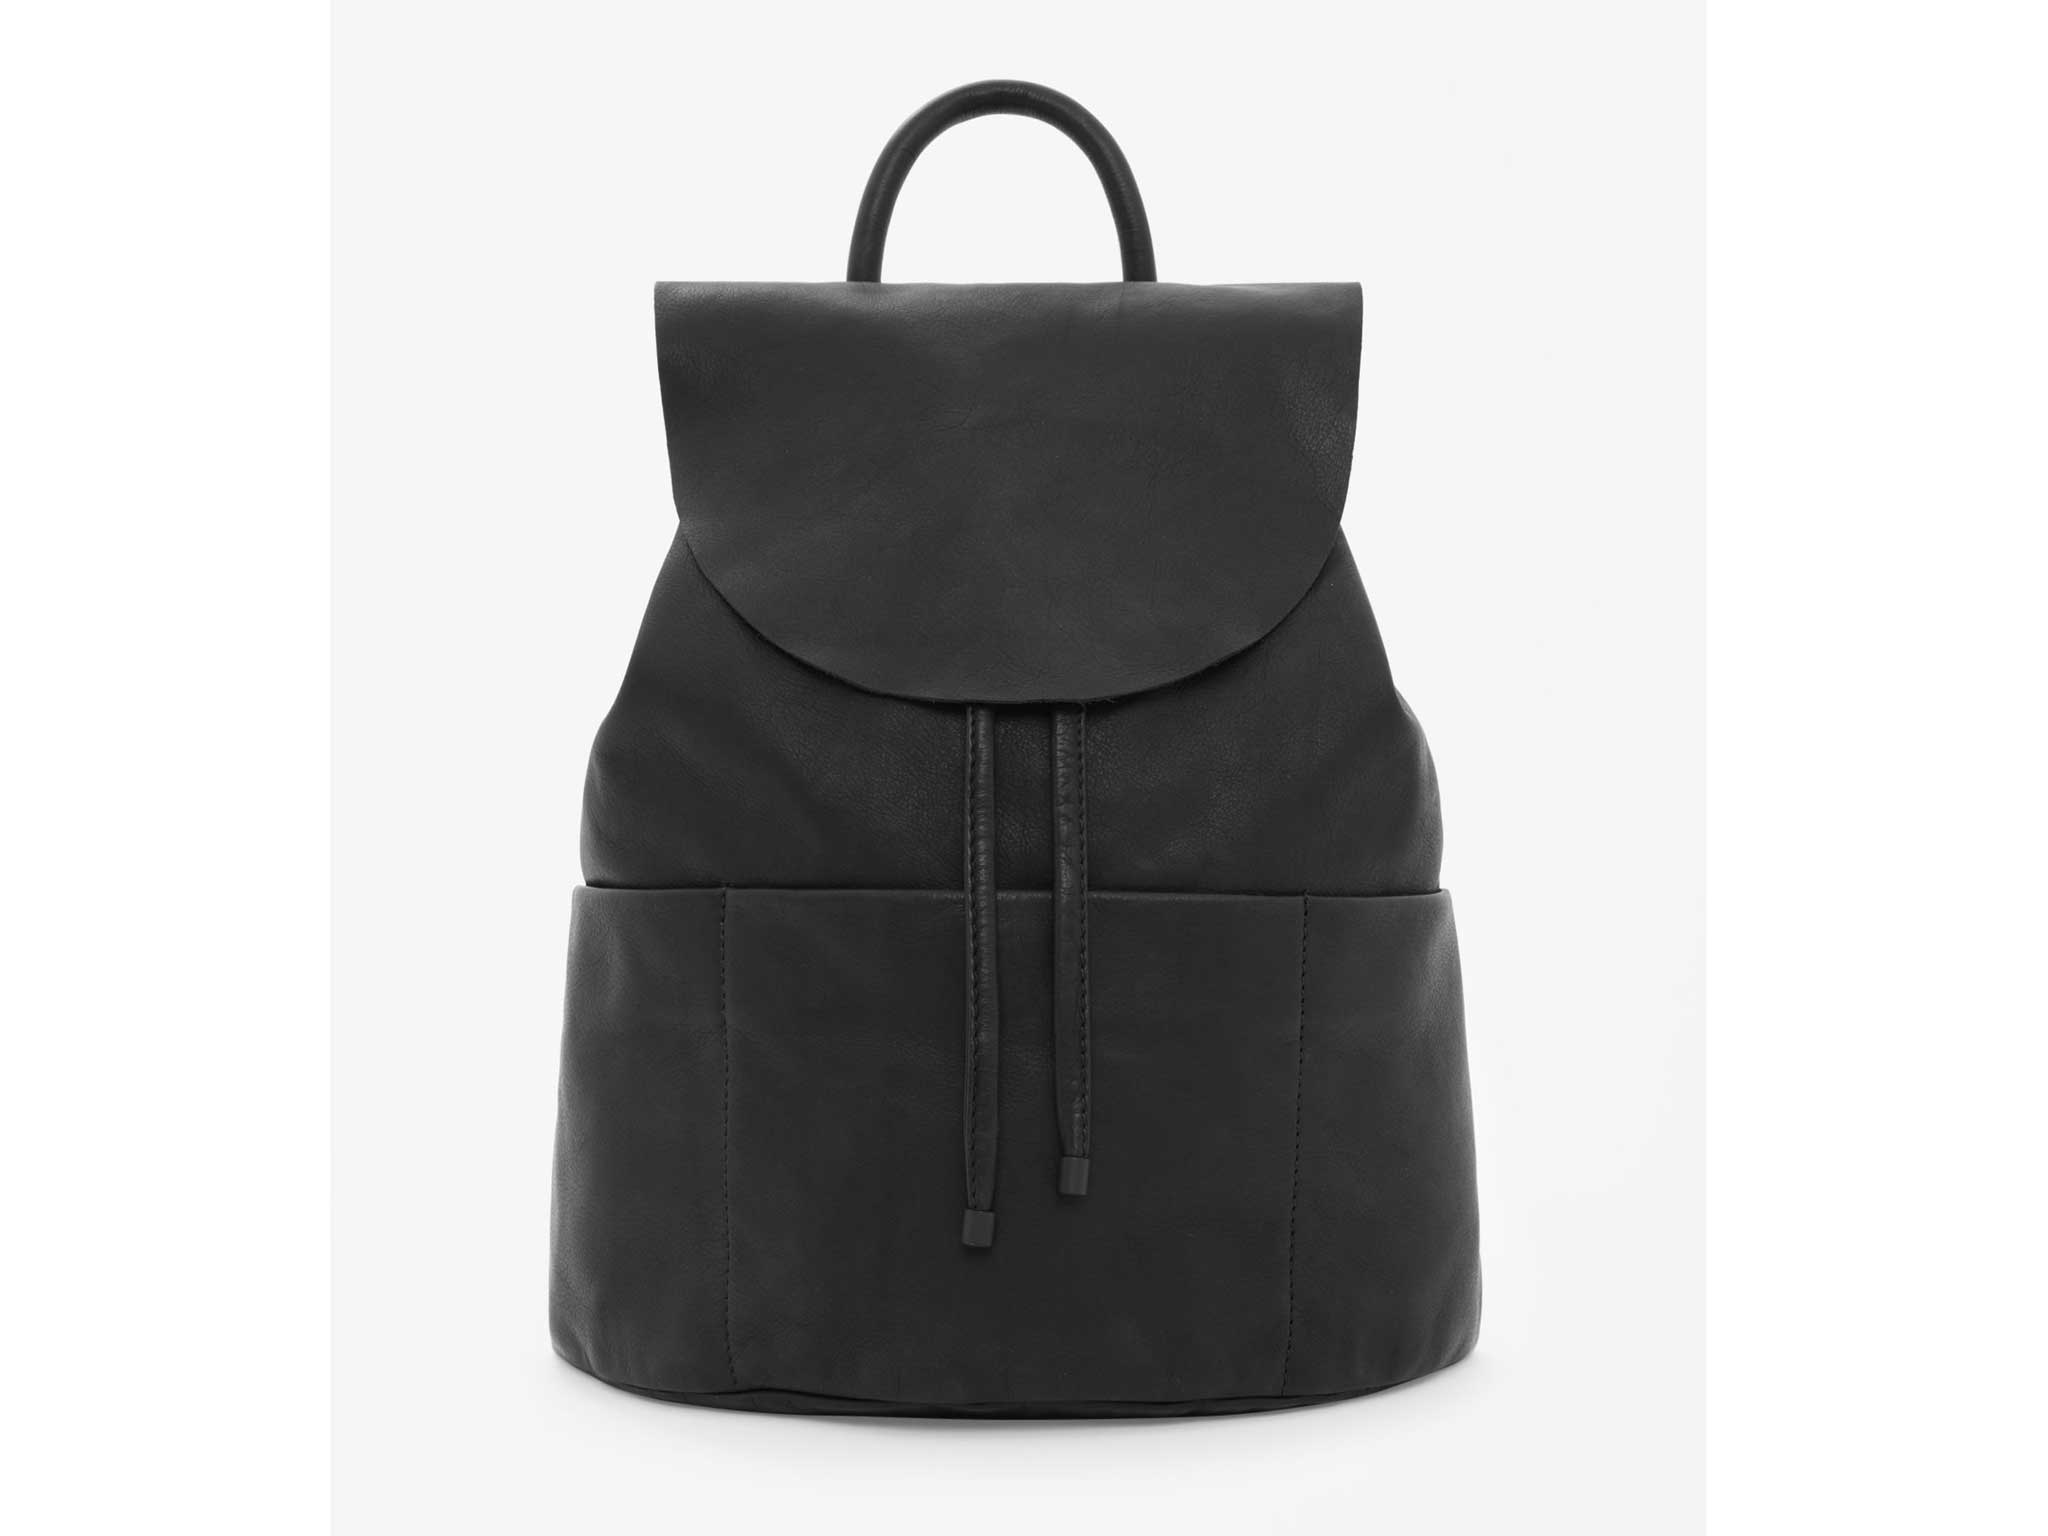 0a433afaf17 Here s a soft, unstructured bag that will go with everything. The raw-cut  edges keep everything pared down and the slimmer-than-average straps help  make it ...